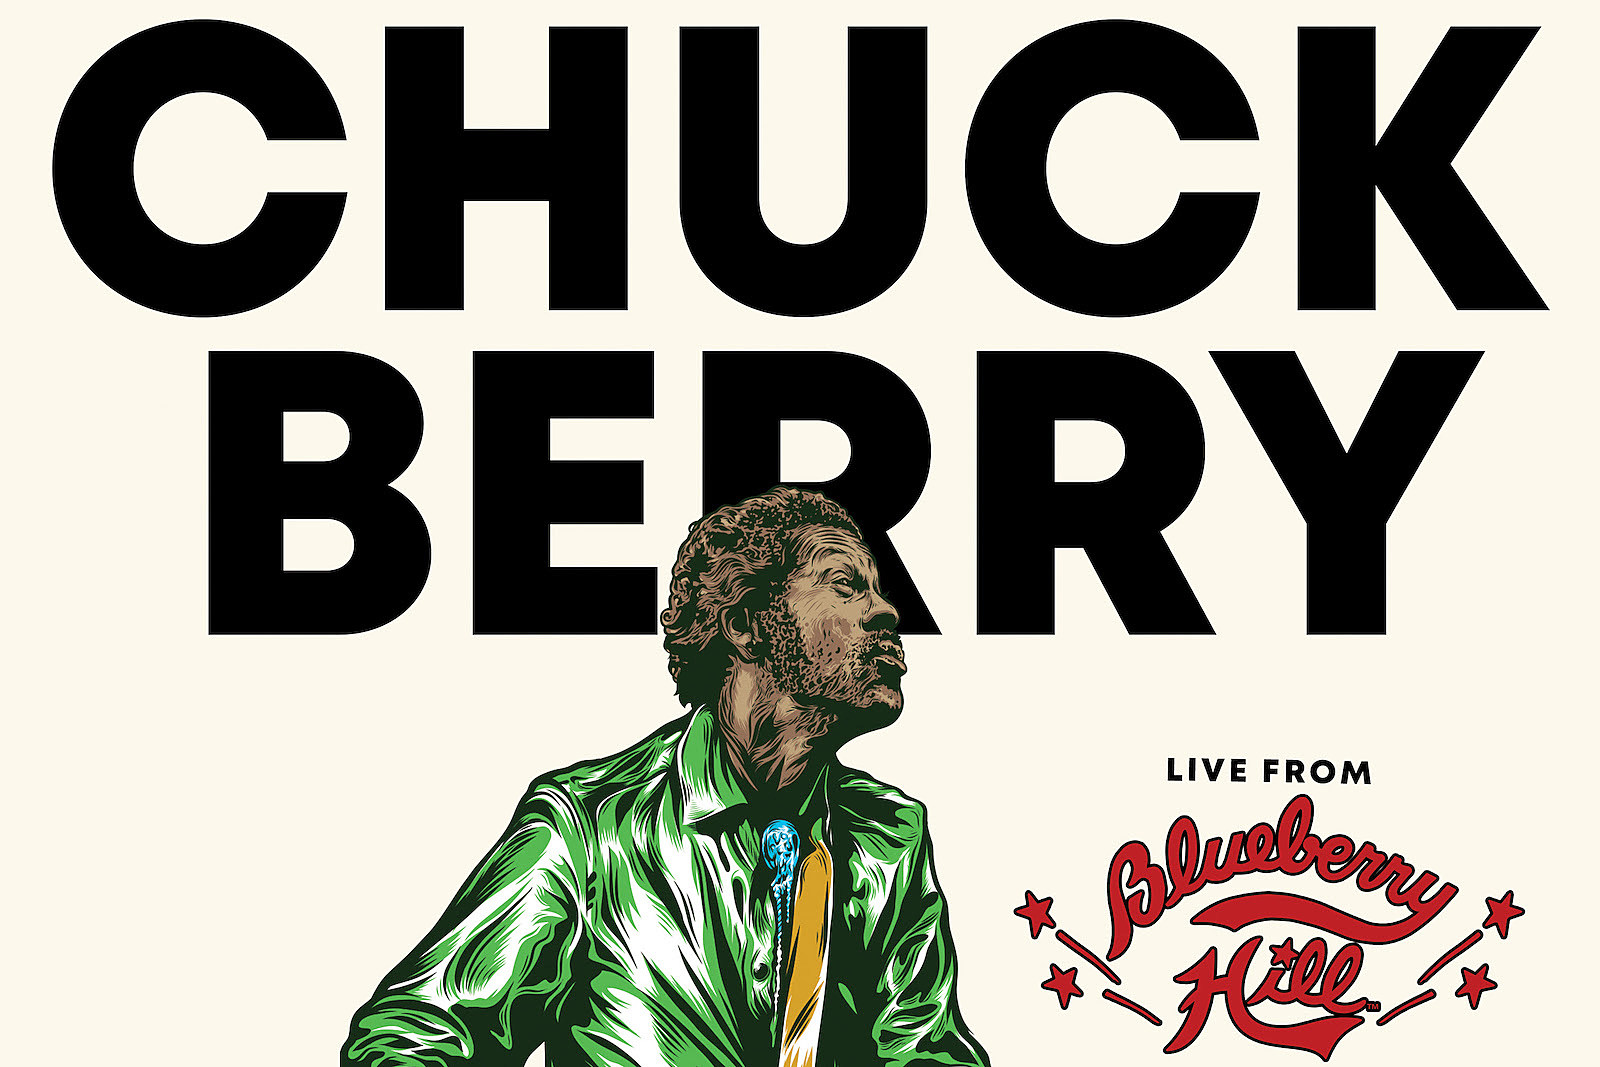 Chuck Berry 'Live From Blueberry Hill' Album Announced